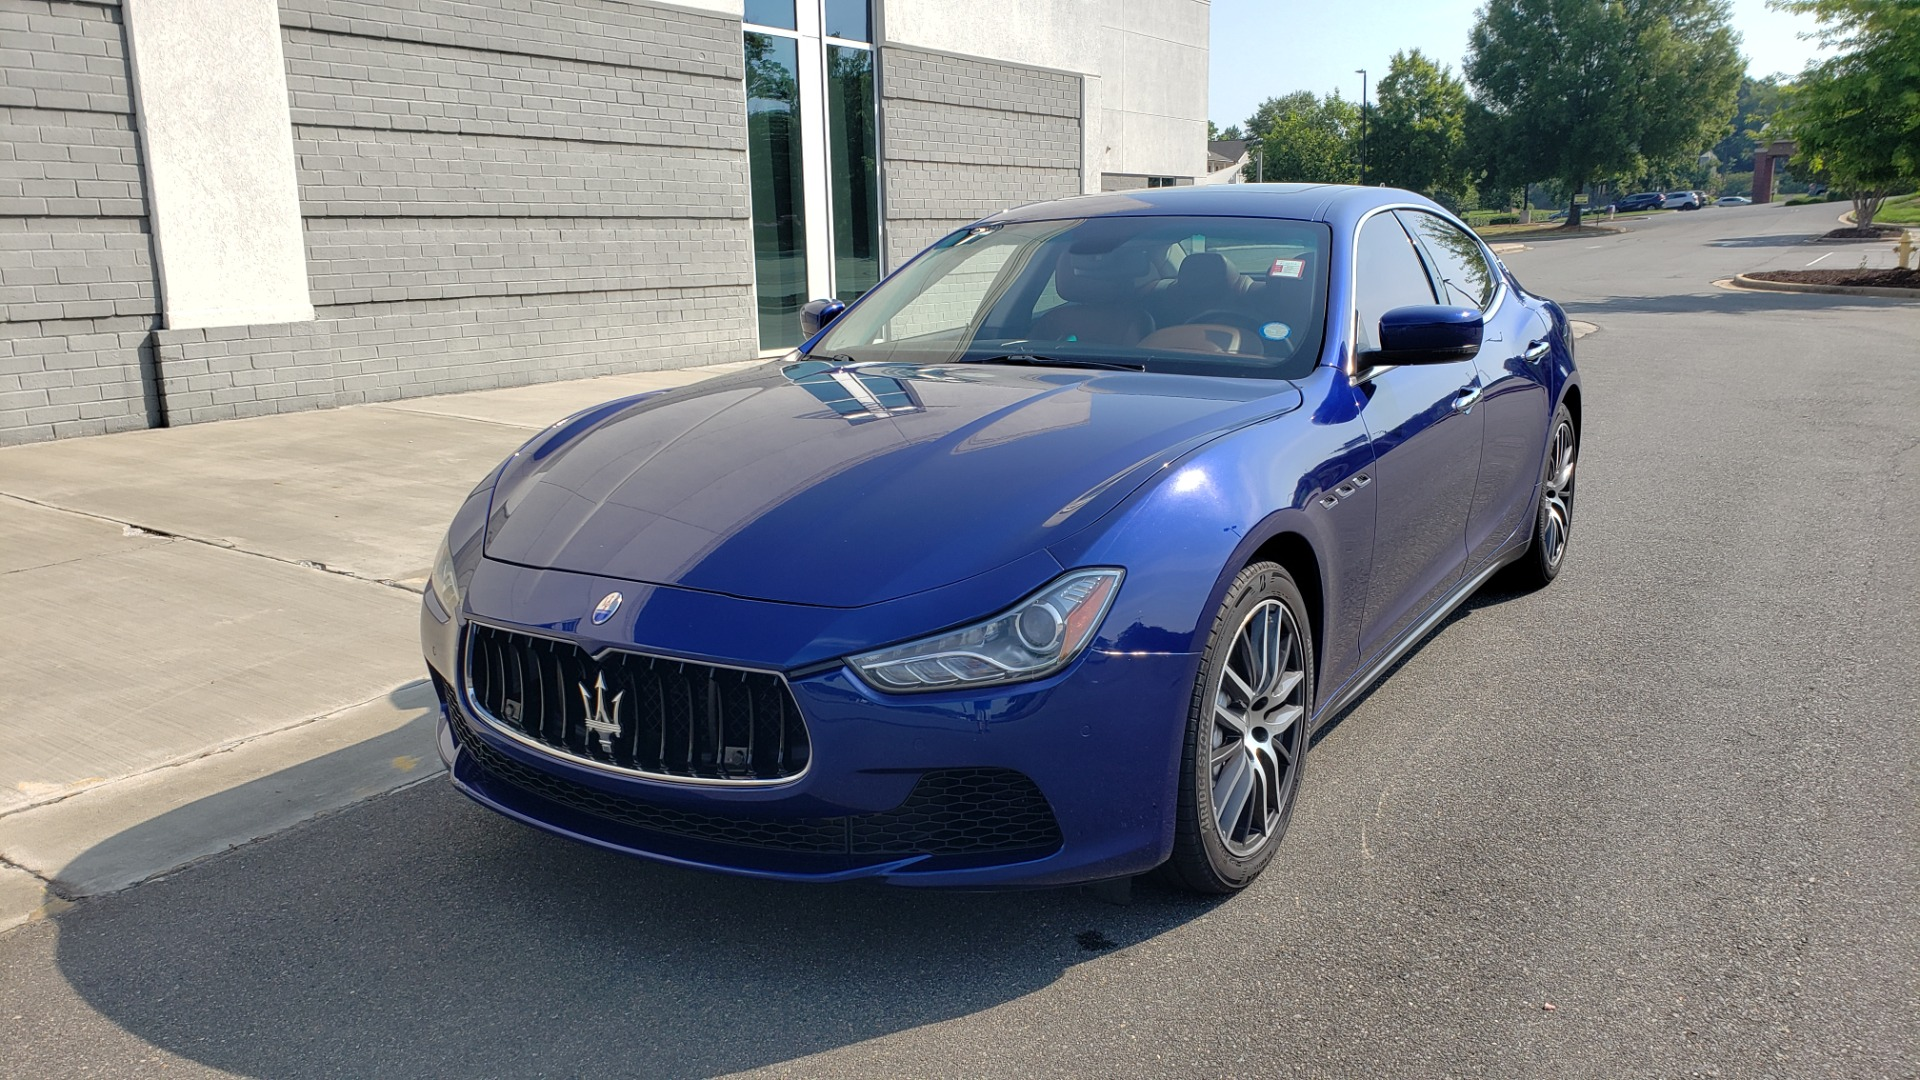 Used 2015 Maserati GHIBLI SEDAN / 3.0L V6 / 8-SPD AUTO / NAV / HTD STS / SUNROOF / REARVIEW for sale $24,495 at Formula Imports in Charlotte NC 28227 3